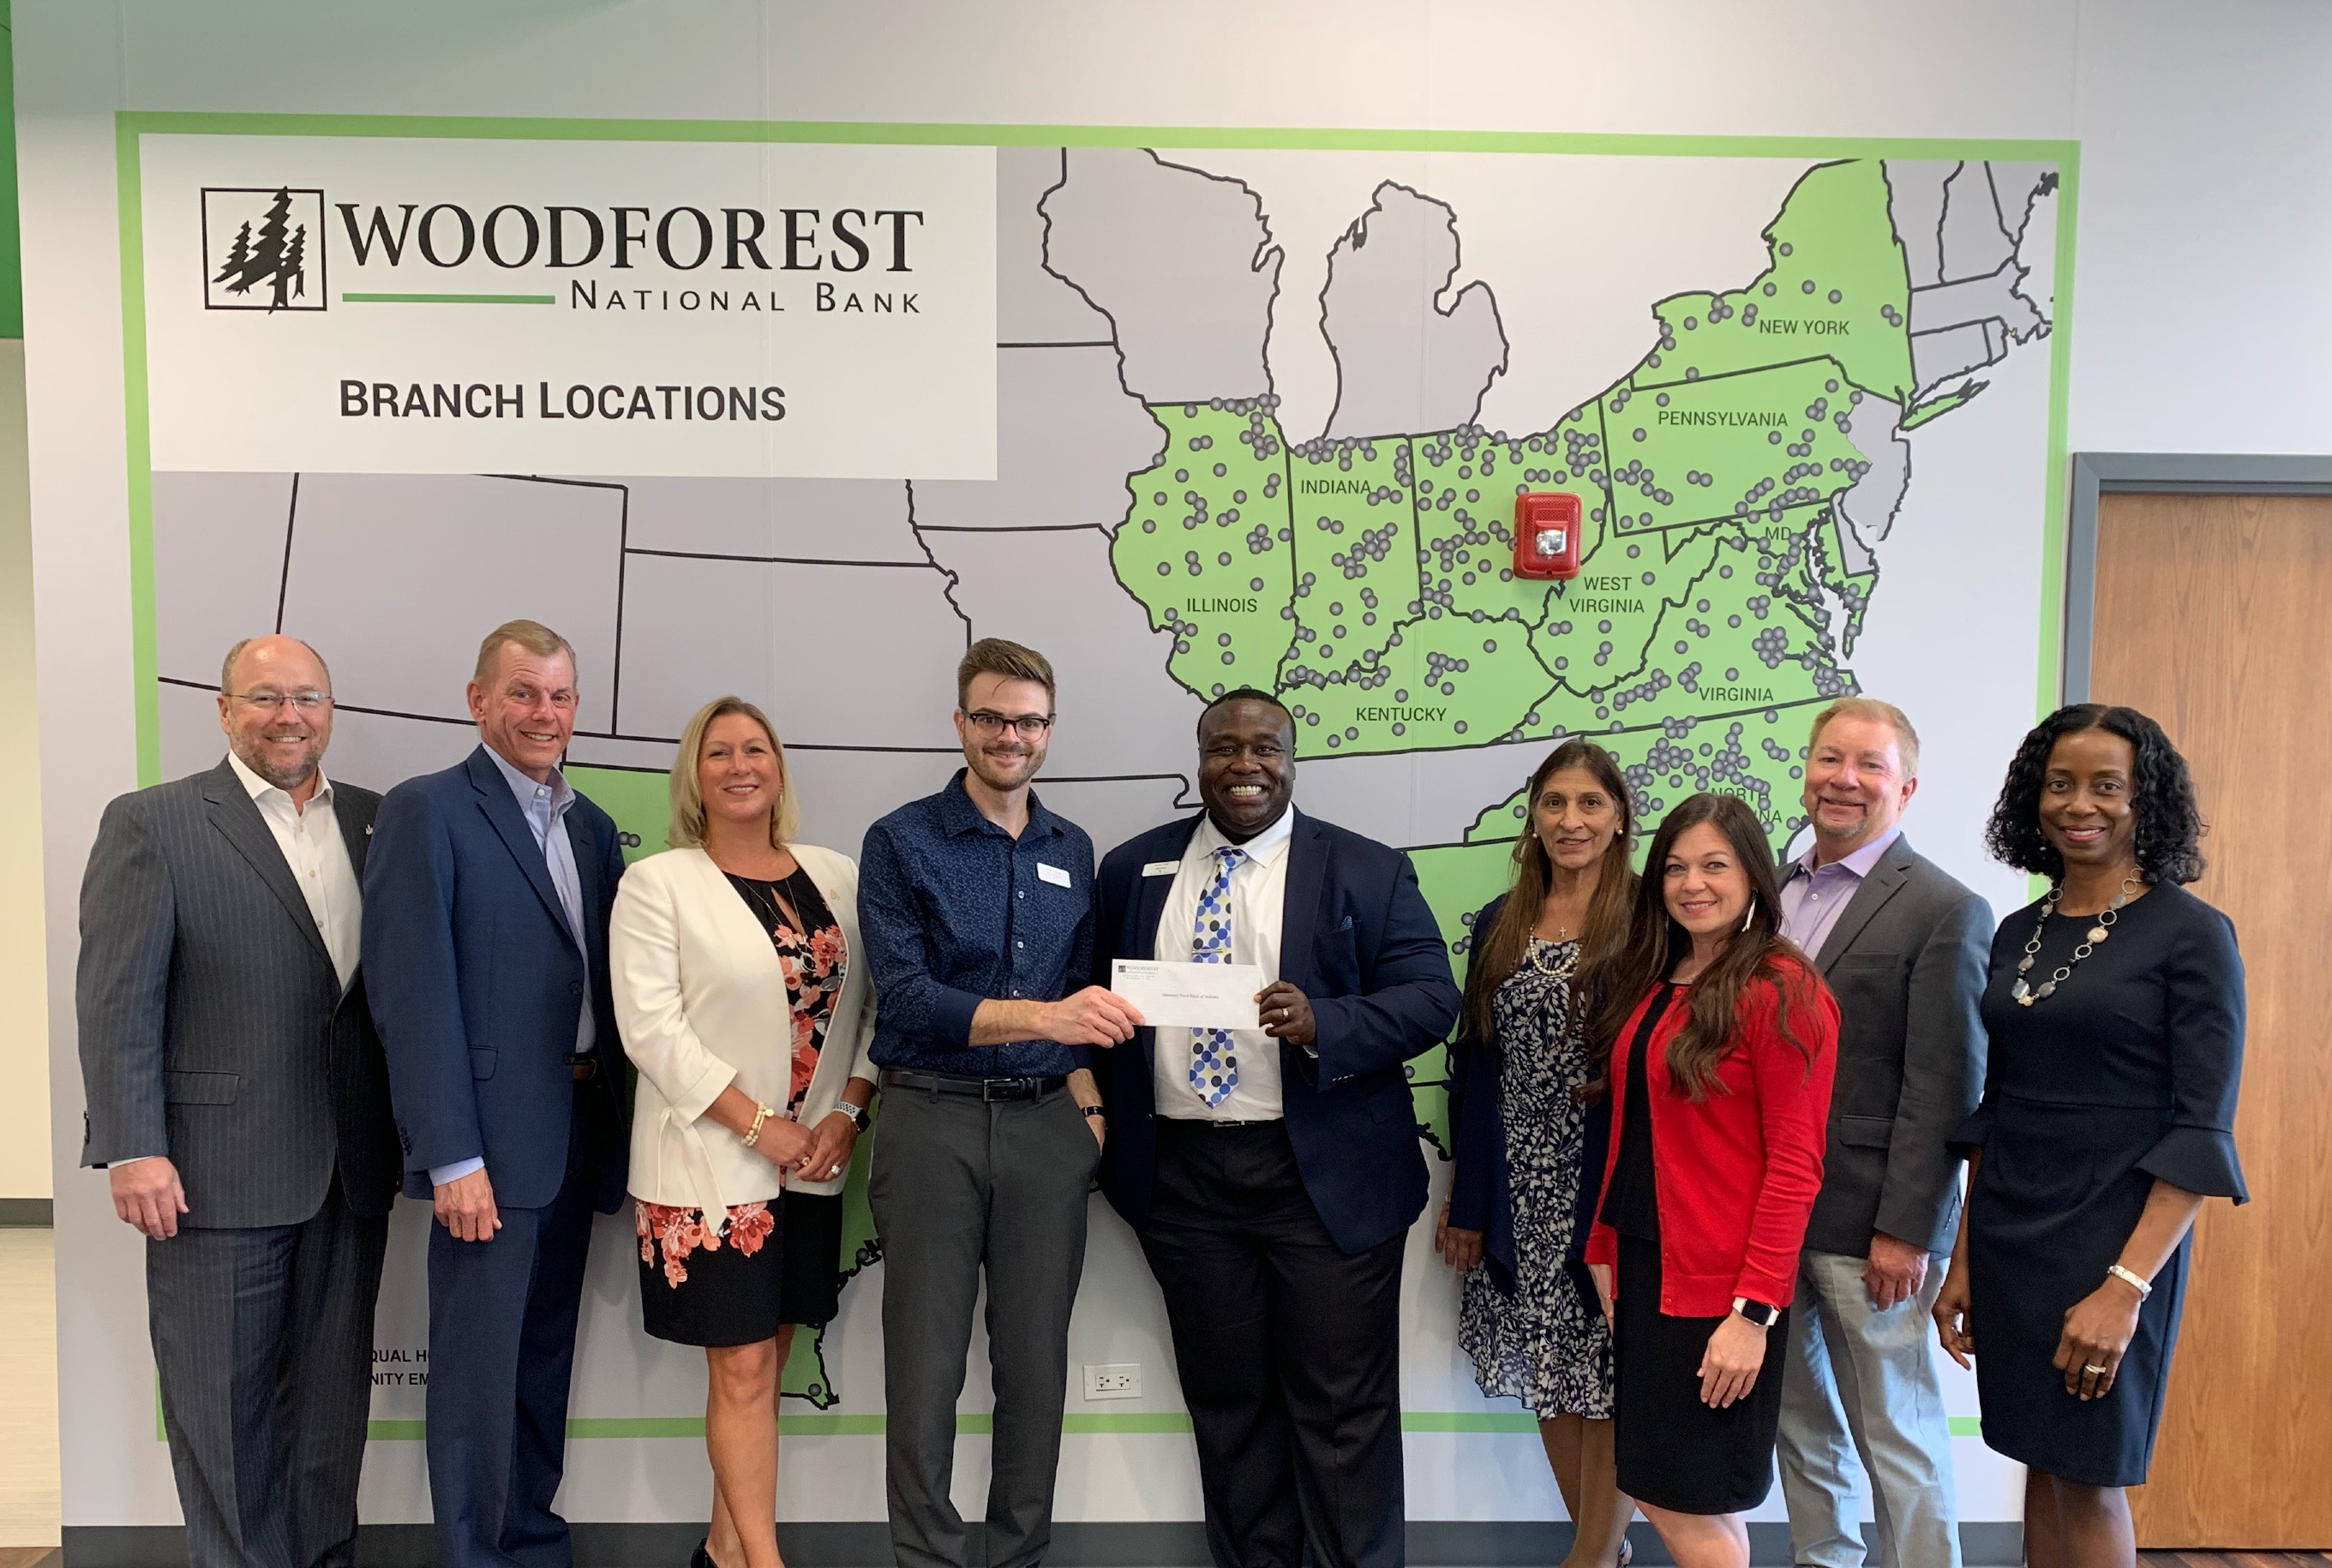 Gleaners Food Bank of Indiana recently received a donation from The Woodforest Charitable Foundation